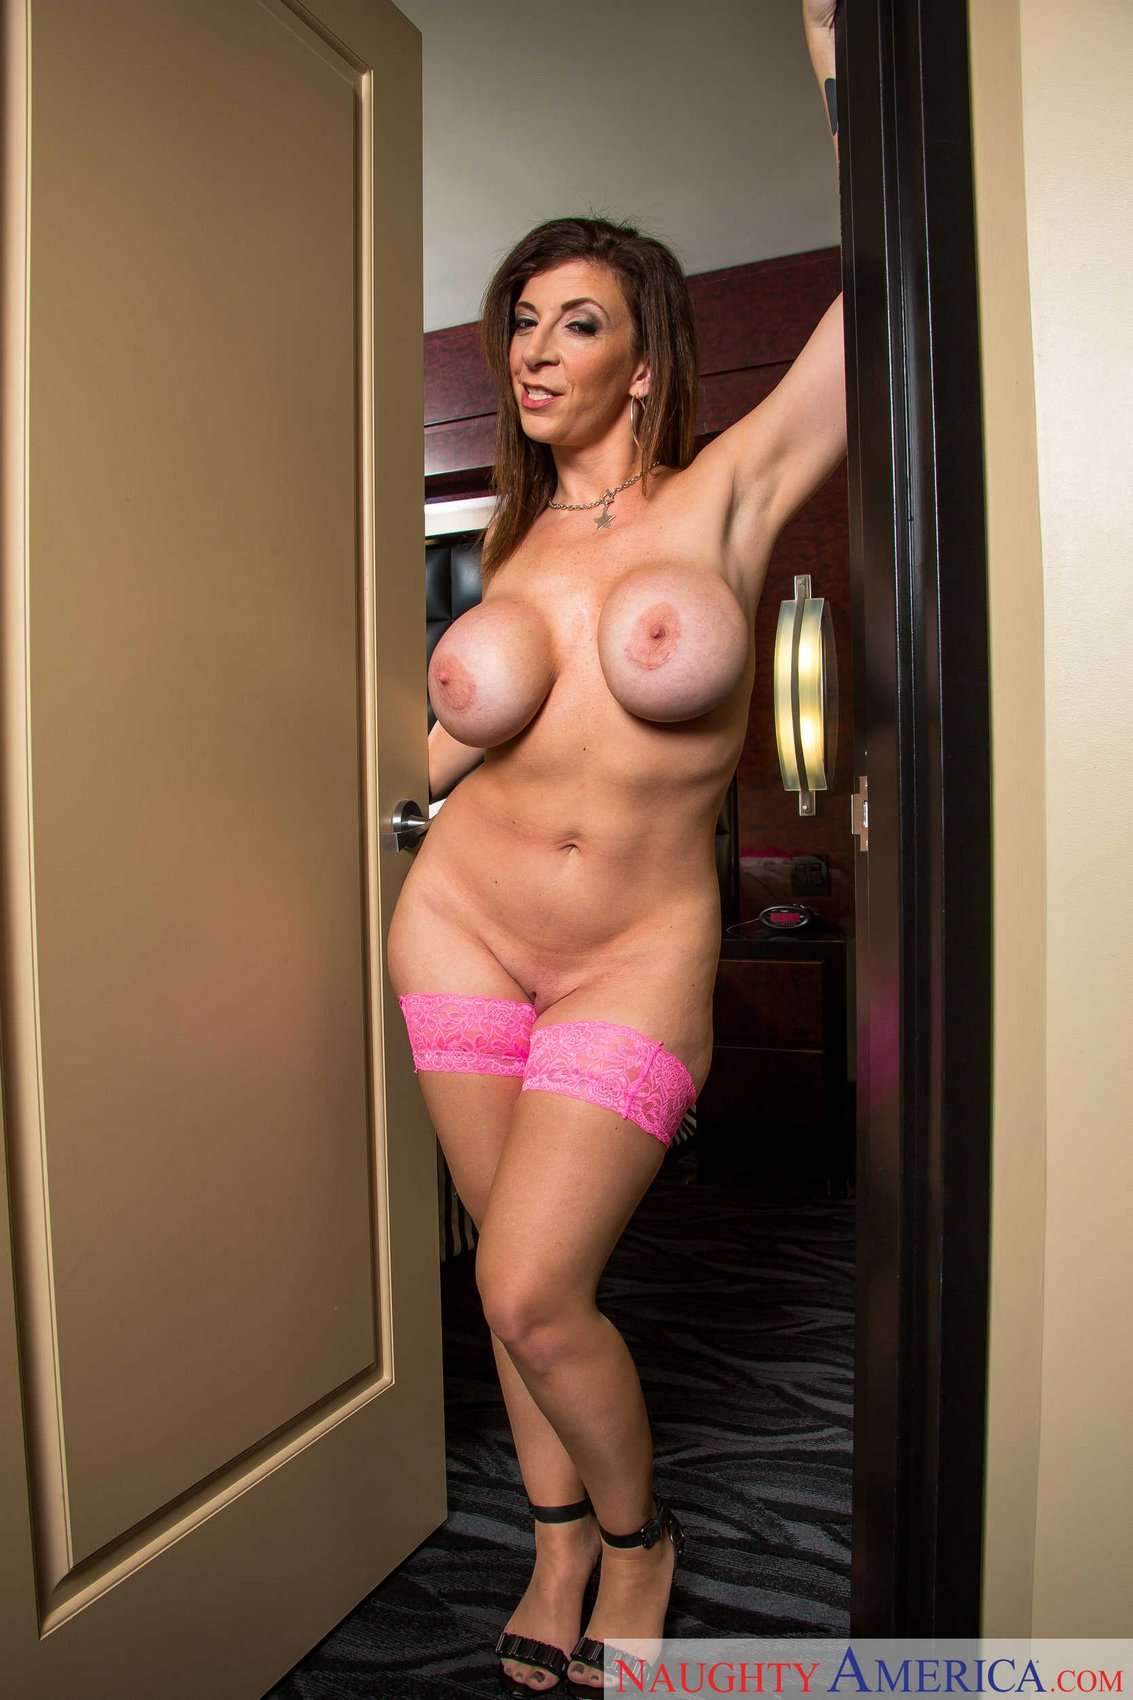 Opinion Sara jay in stockings porn valuable information